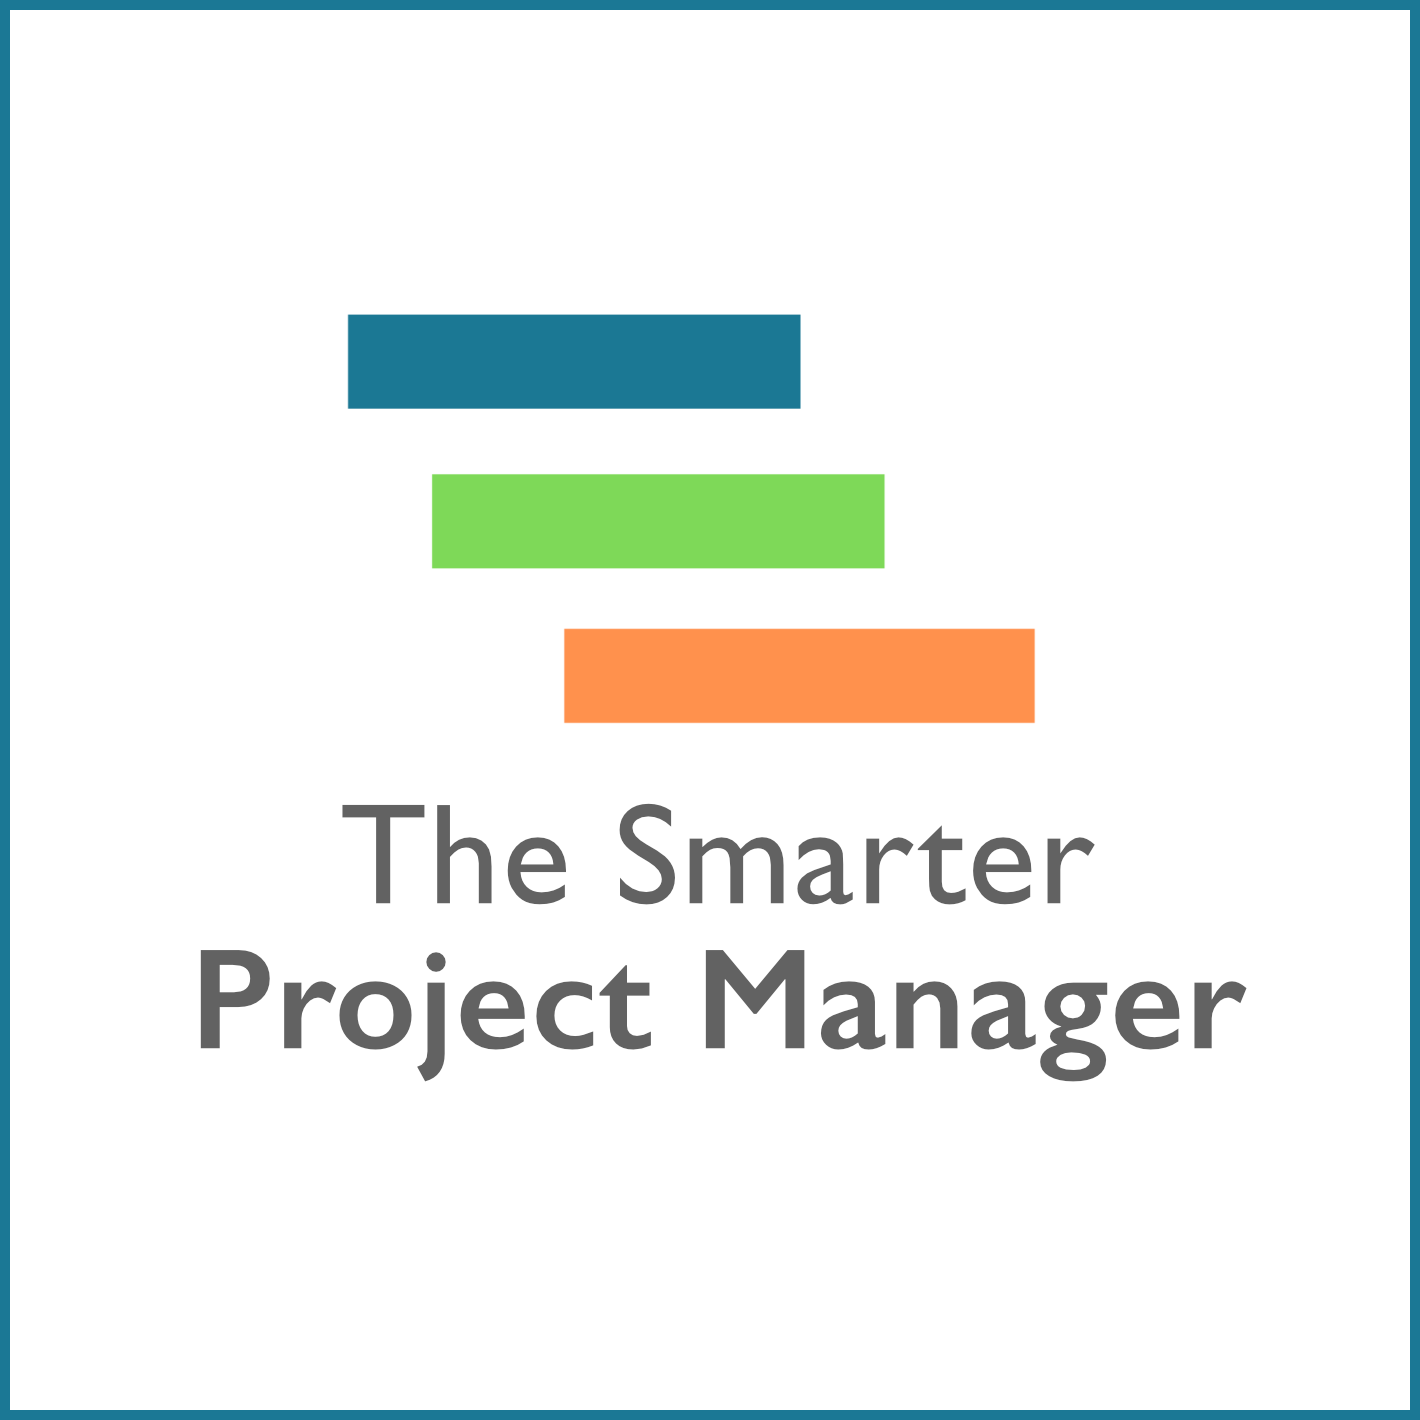 The Smarter Project Manager - a project management podcast